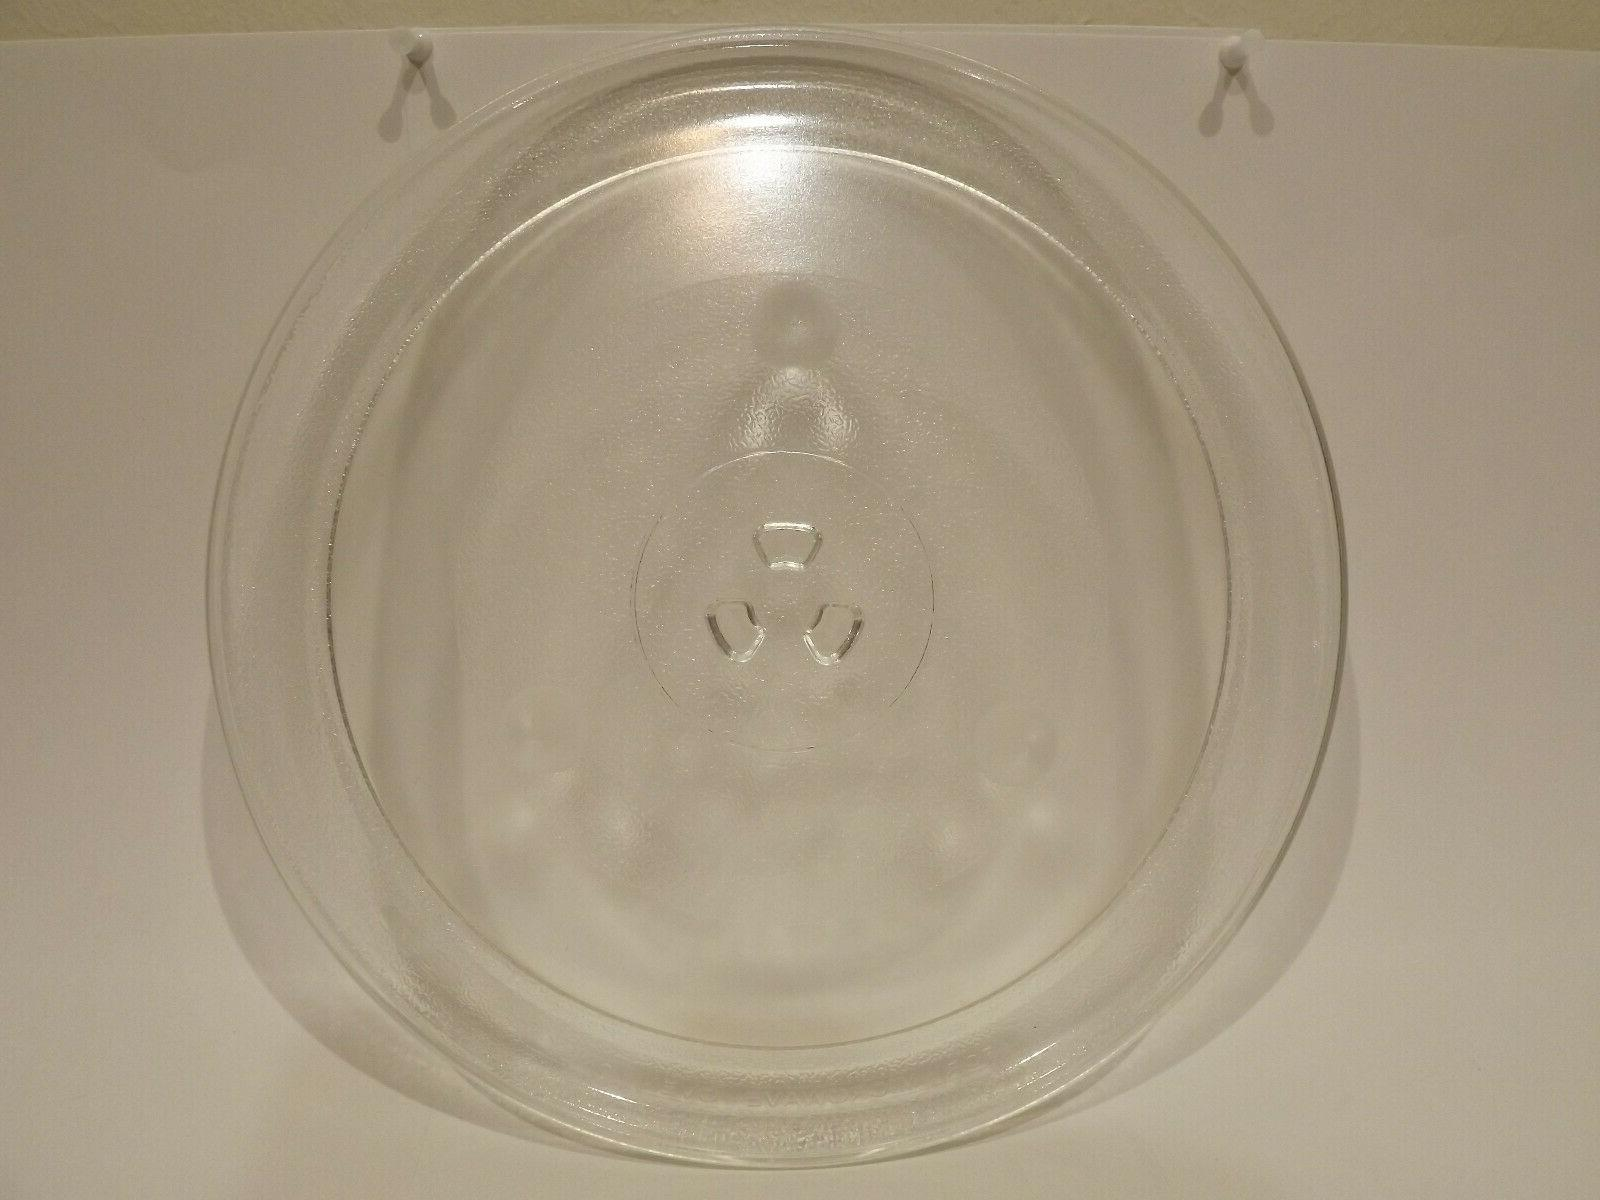 microwave oven turntable glass dish plate 12